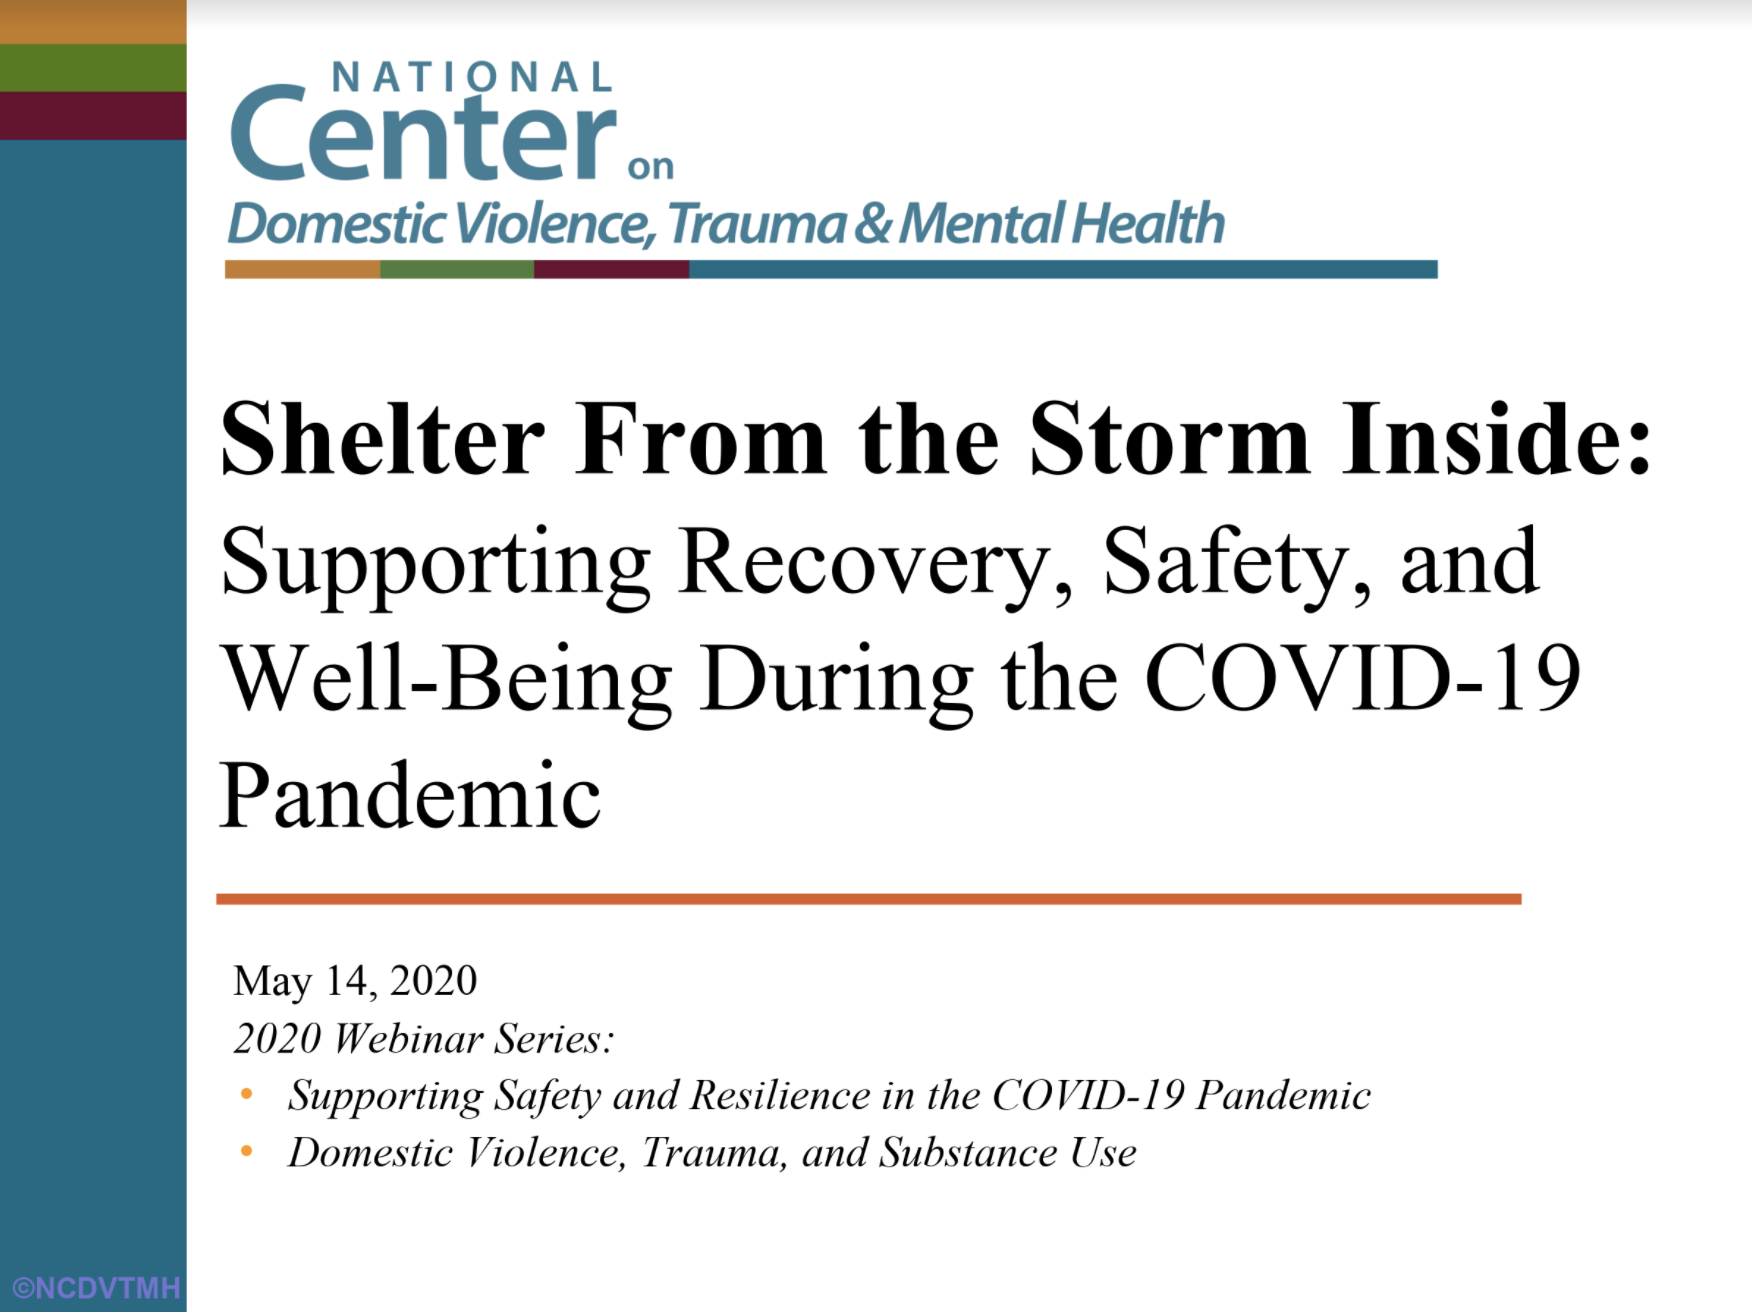 Coercion Related to Mental Health and Substance Use in the Context of Intimate Partner Violence: A Toolkit for Screening, Assessment, and Brief Counseling in Primary Care and Behavioral Health Settings